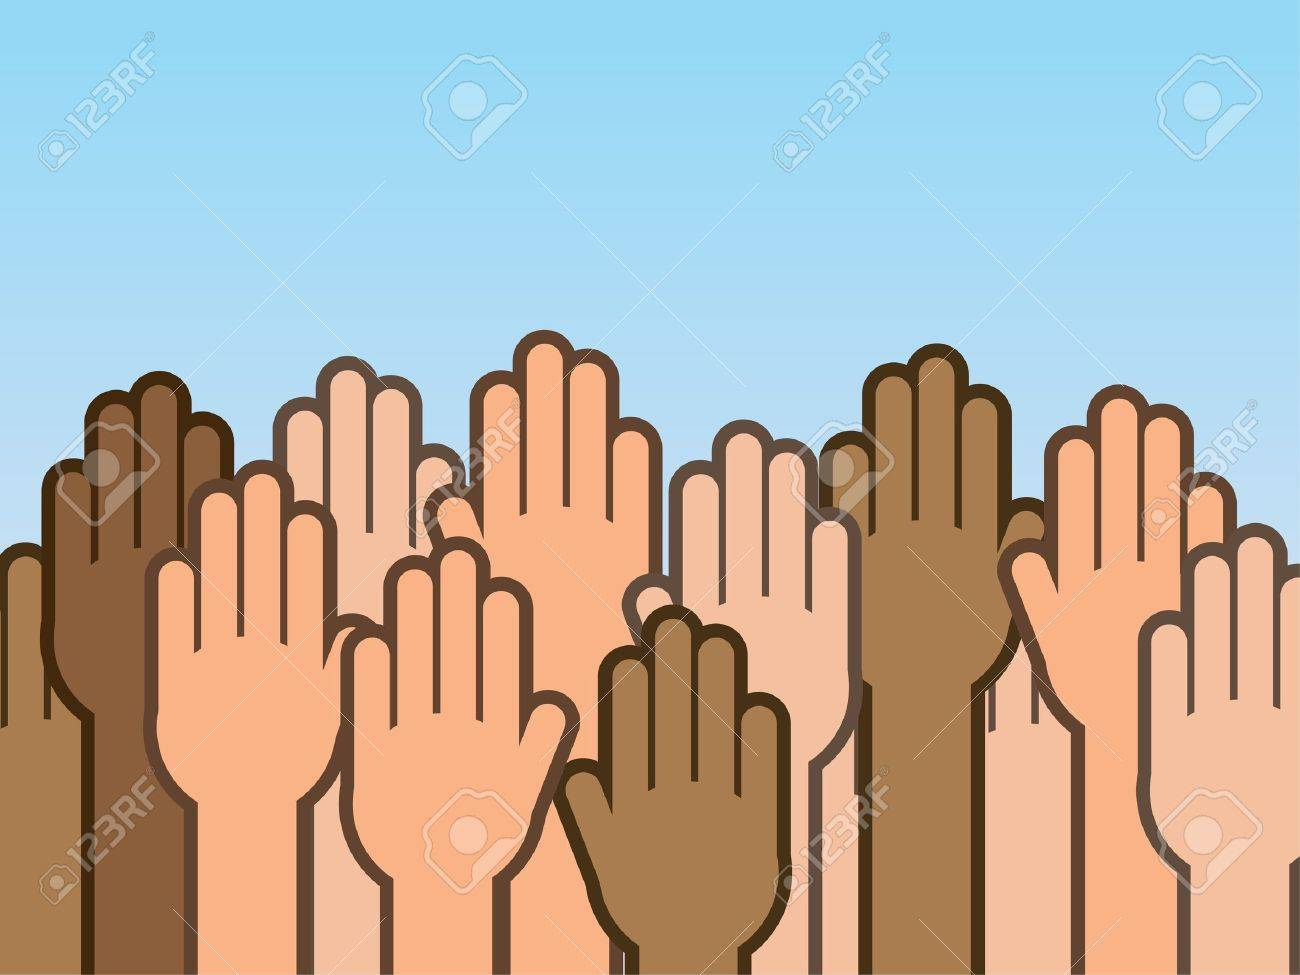 Many hands raised up into the air Stock Vector - 19731909